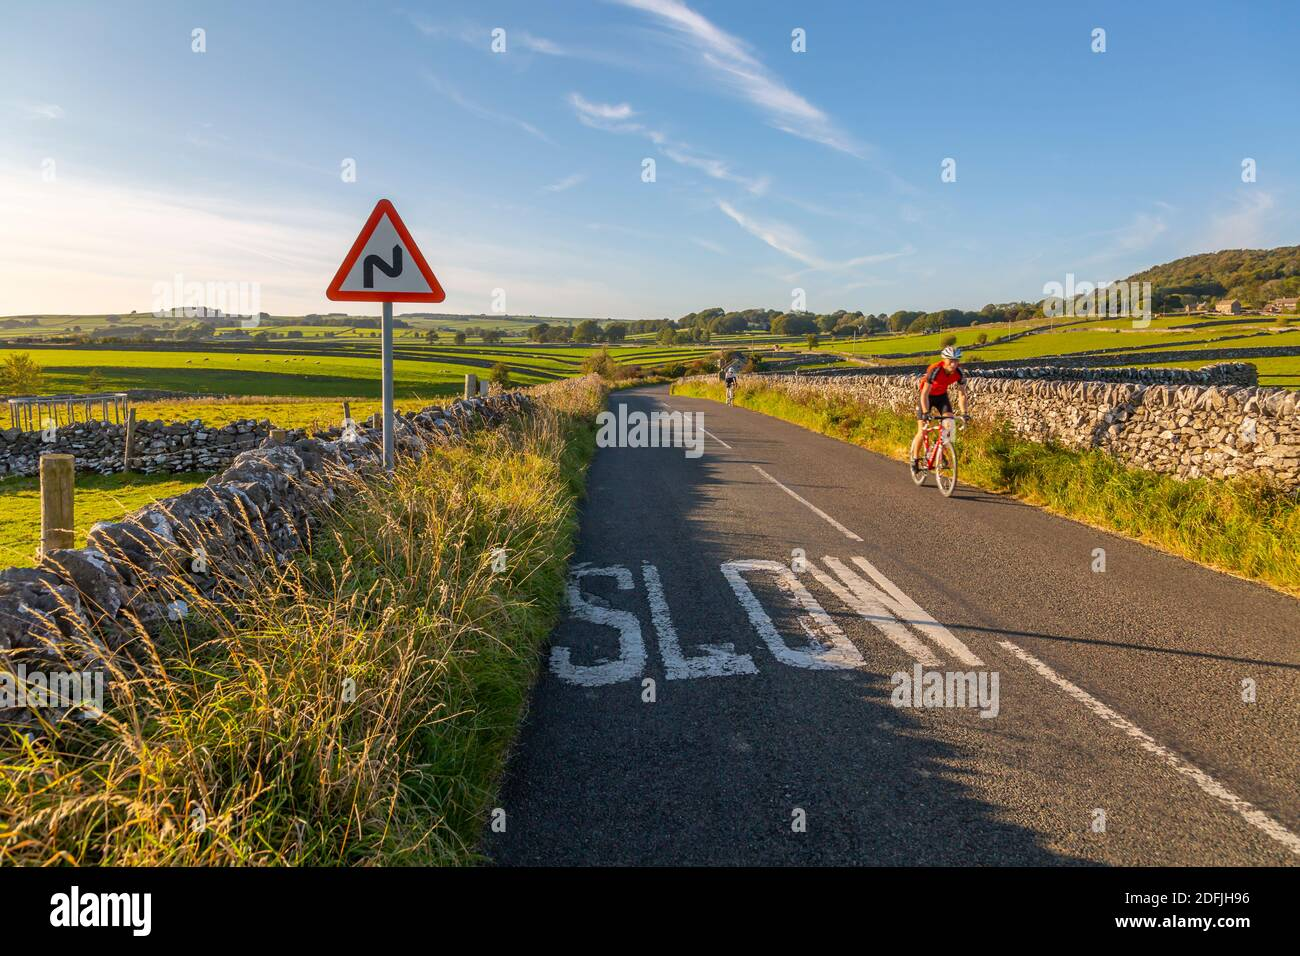 View of dry stone walls and cyclist on country lane, Foolow, Derbyshire Peak District, England, United Kingdom, Europe Stock Photo